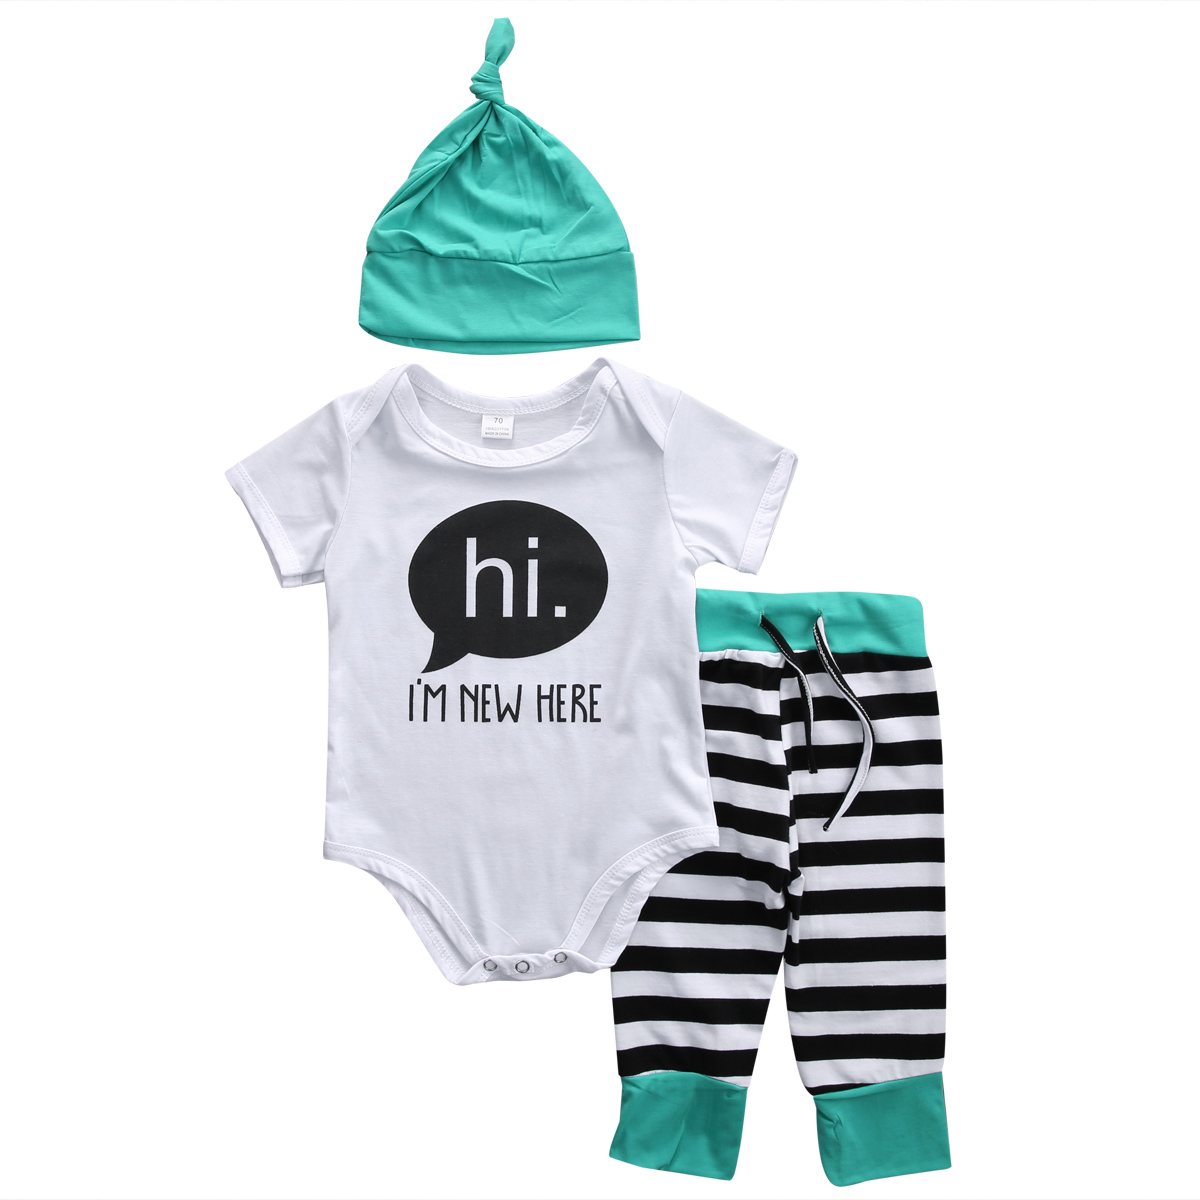 3Pcs Newborn Baby Boys Girls Clothes Short Sleeve Rompers Pants Hats Kids Toddler cotton summer Casual suits Outfits Set infant toddler baby kids boys girls pocket jumpsuit long sleeve rompers hats kids warm outfits set 0 24m